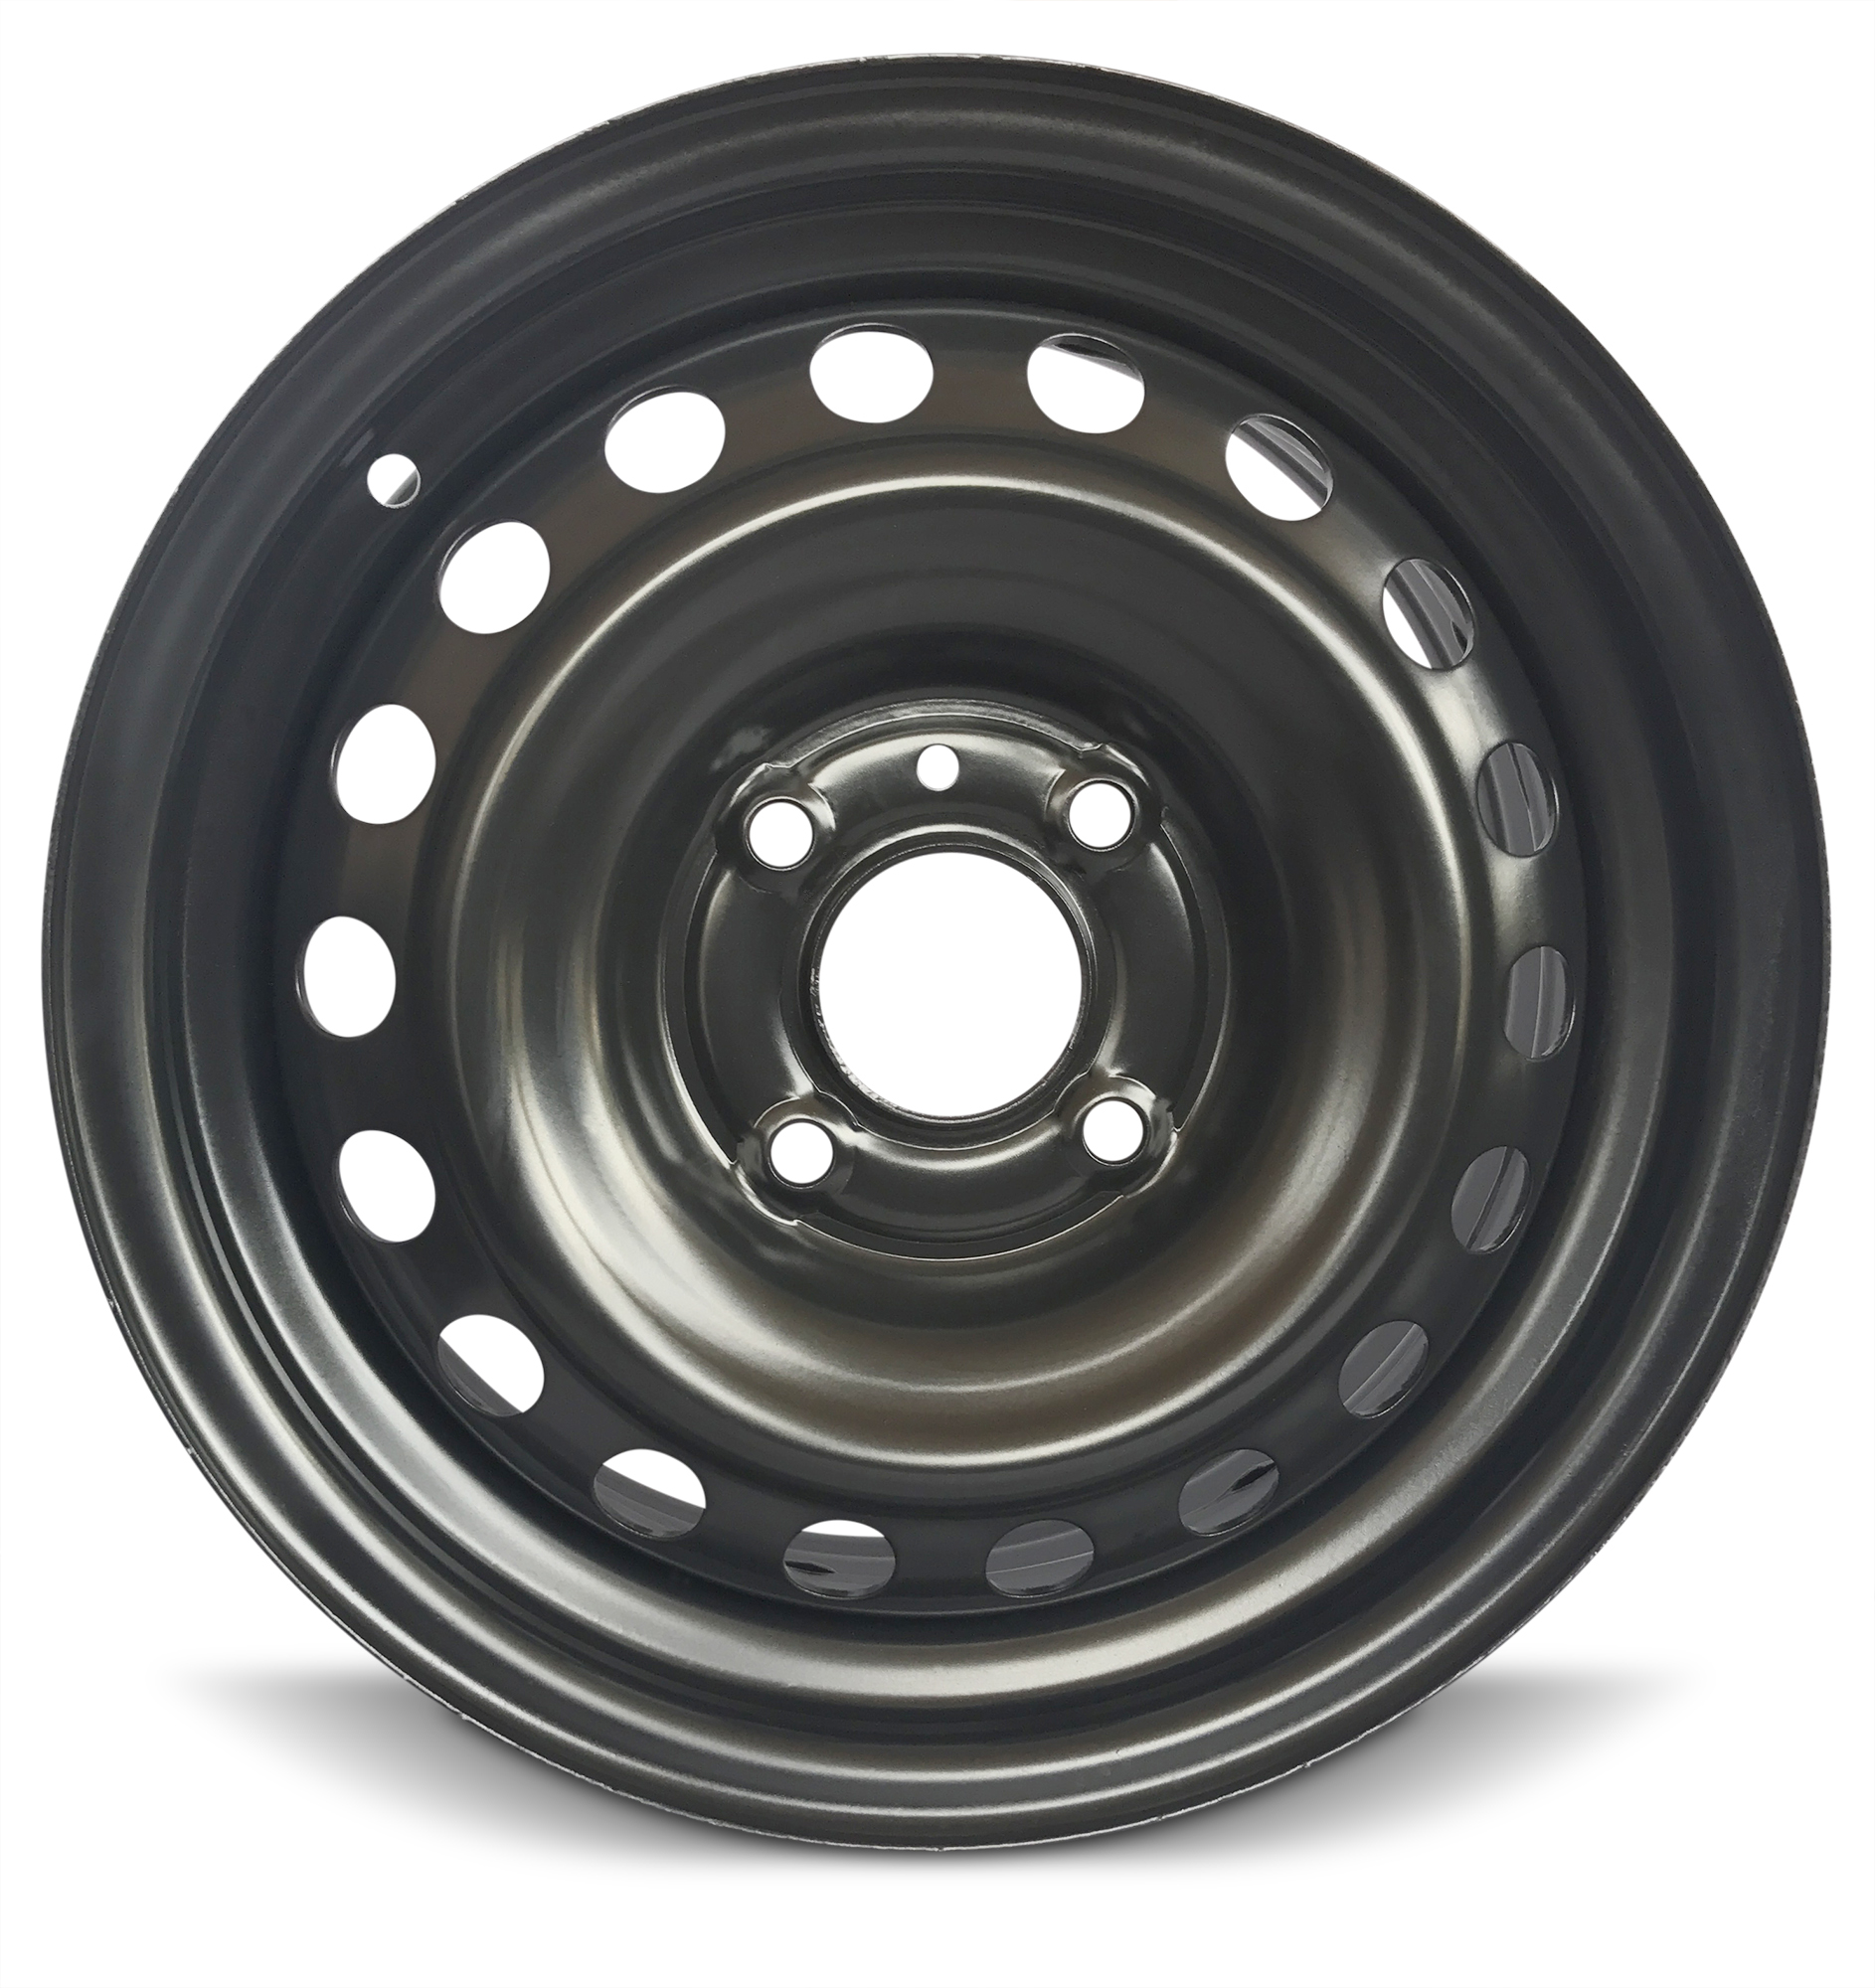 15x6.5 Nissan Sentra Steel Wheel / Rim - Road Ready Wheels